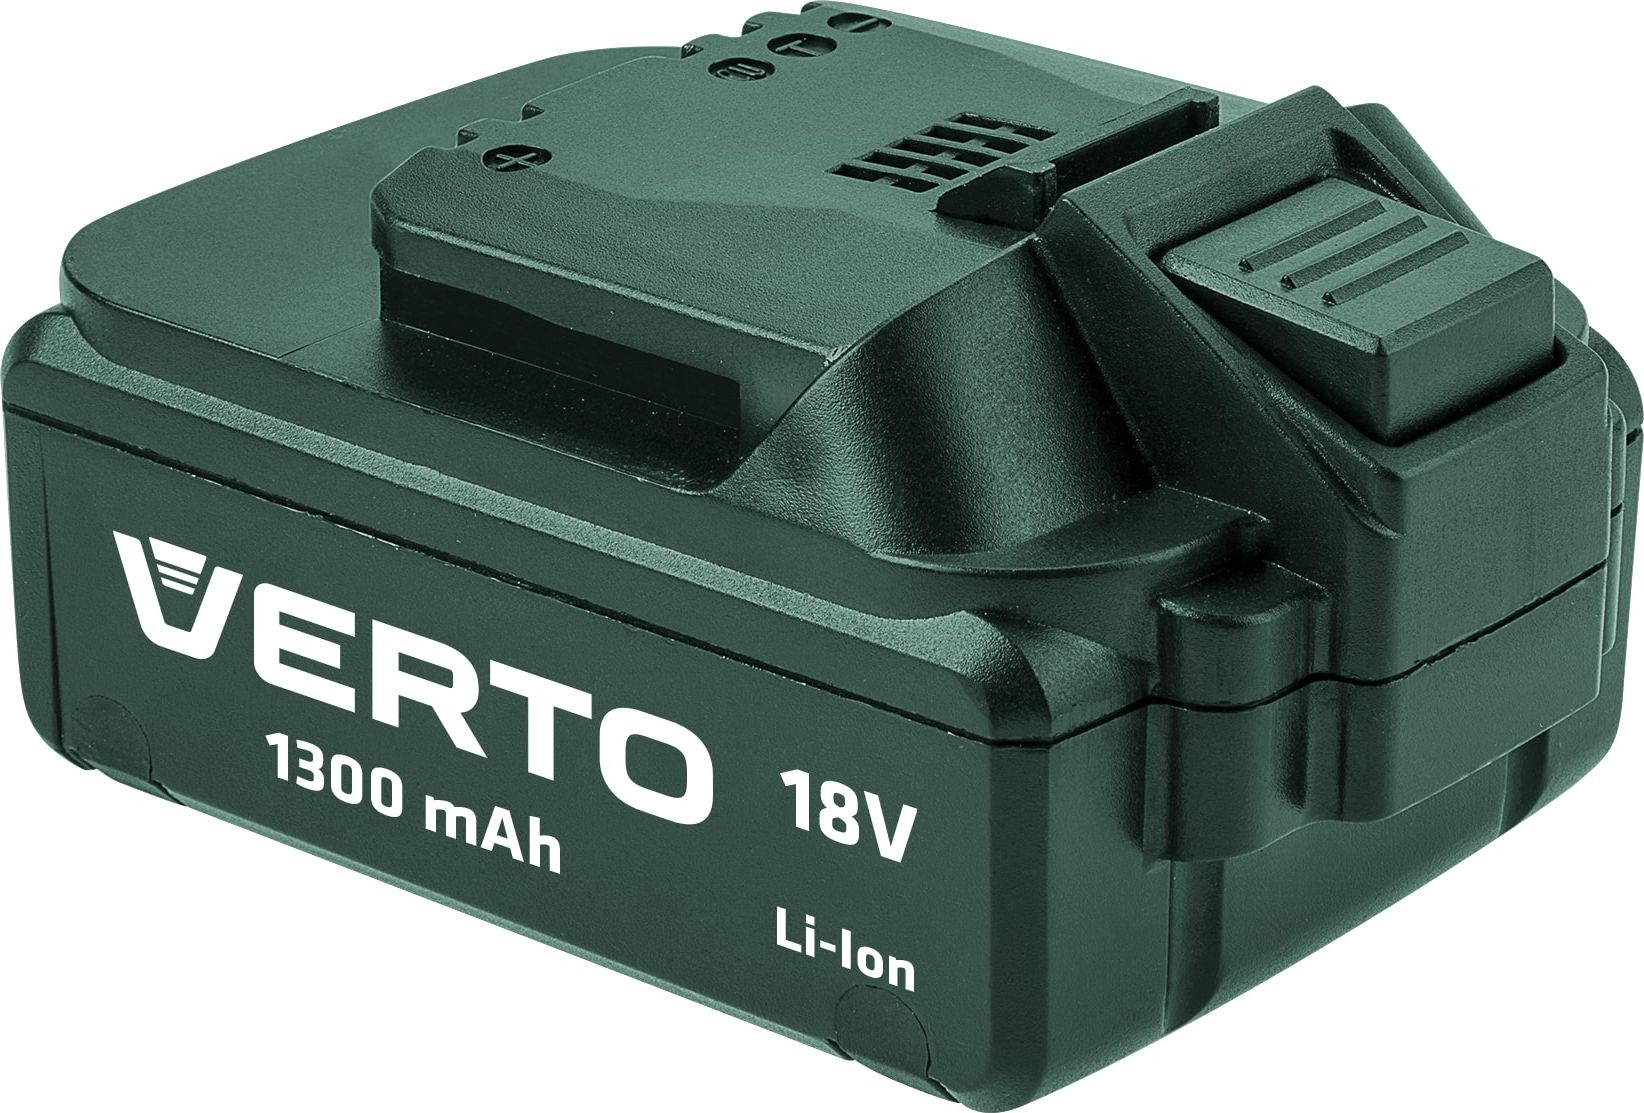 VERTO 18V 1300mAh Li-Ion Green Power - K74735